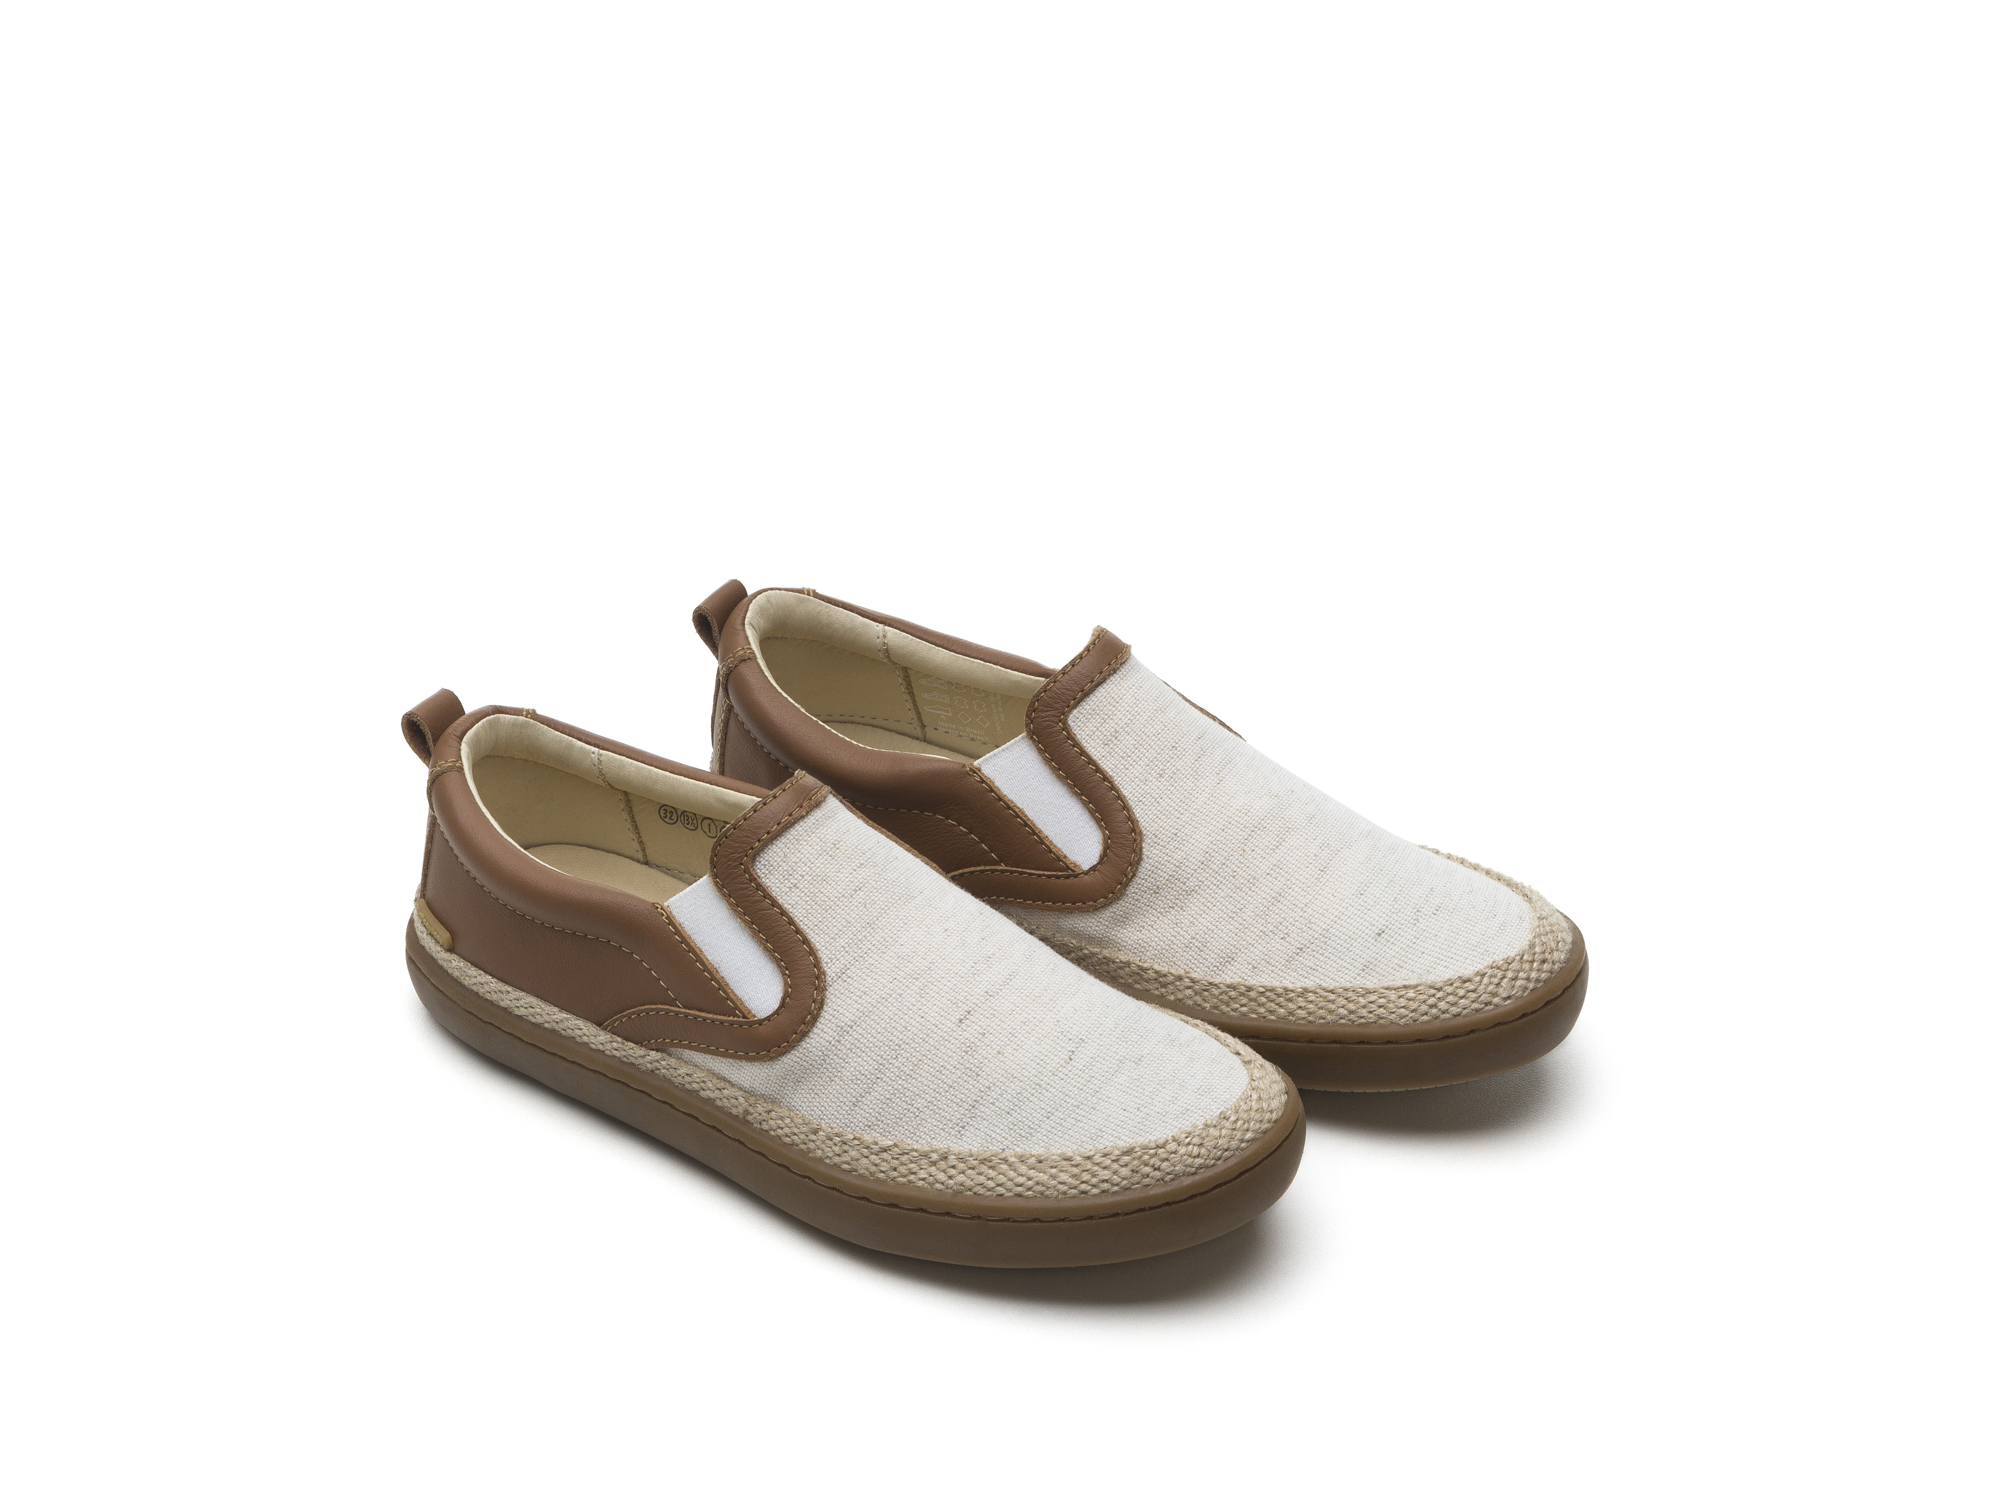 Tênis Straw Linen Canvas/ Cacau Junior 4 à 8 anos - 0